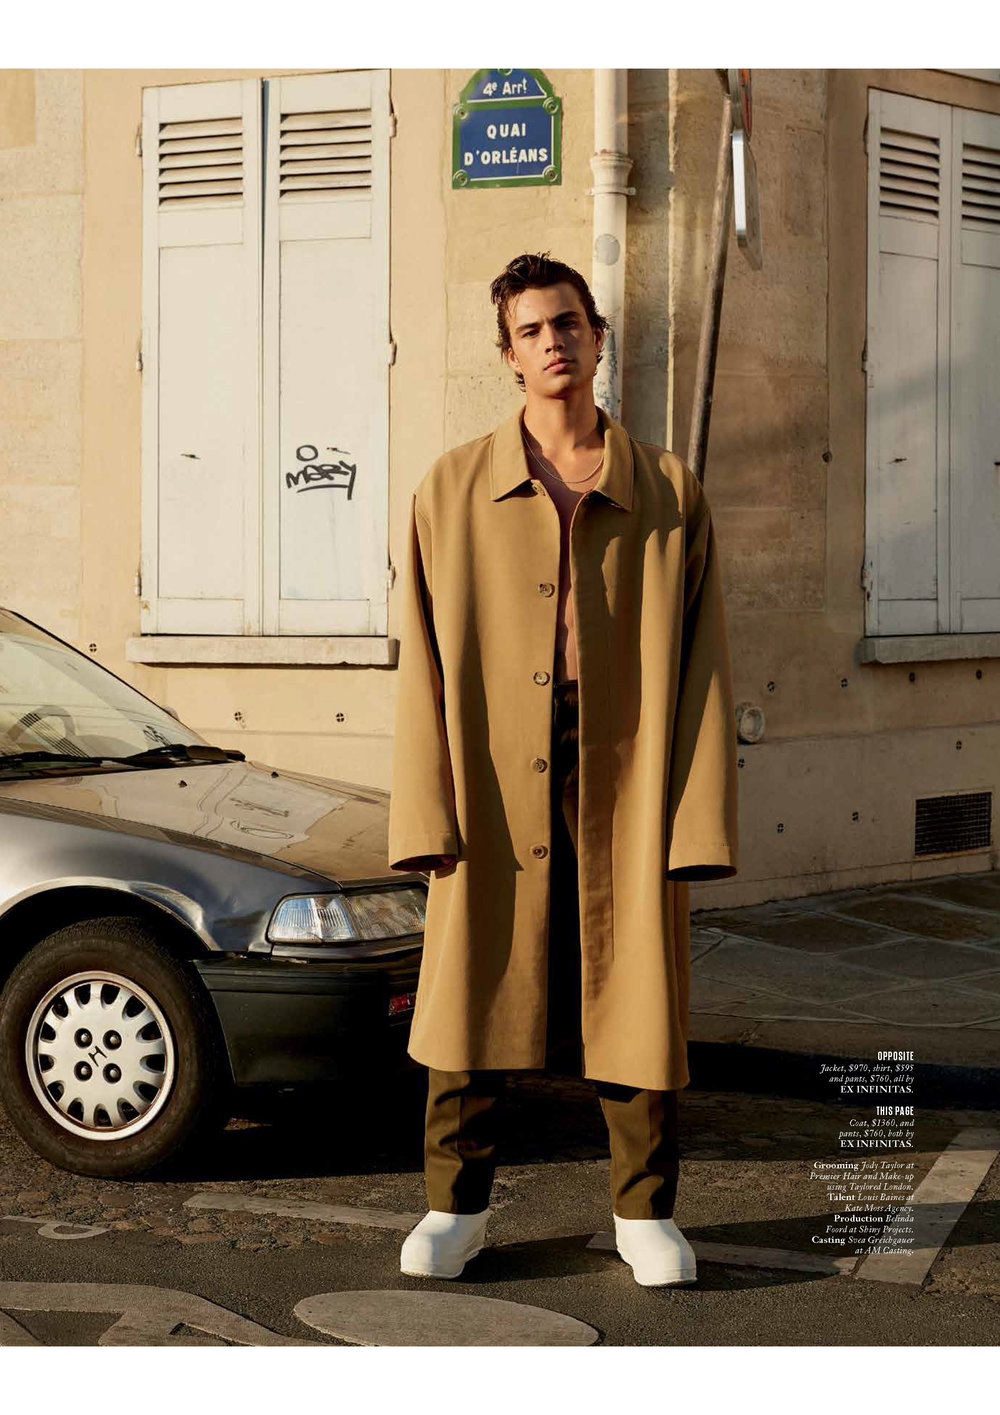 LOUIS BAINES WEARS MERINO COOLER FUTURE DUSTER COAT